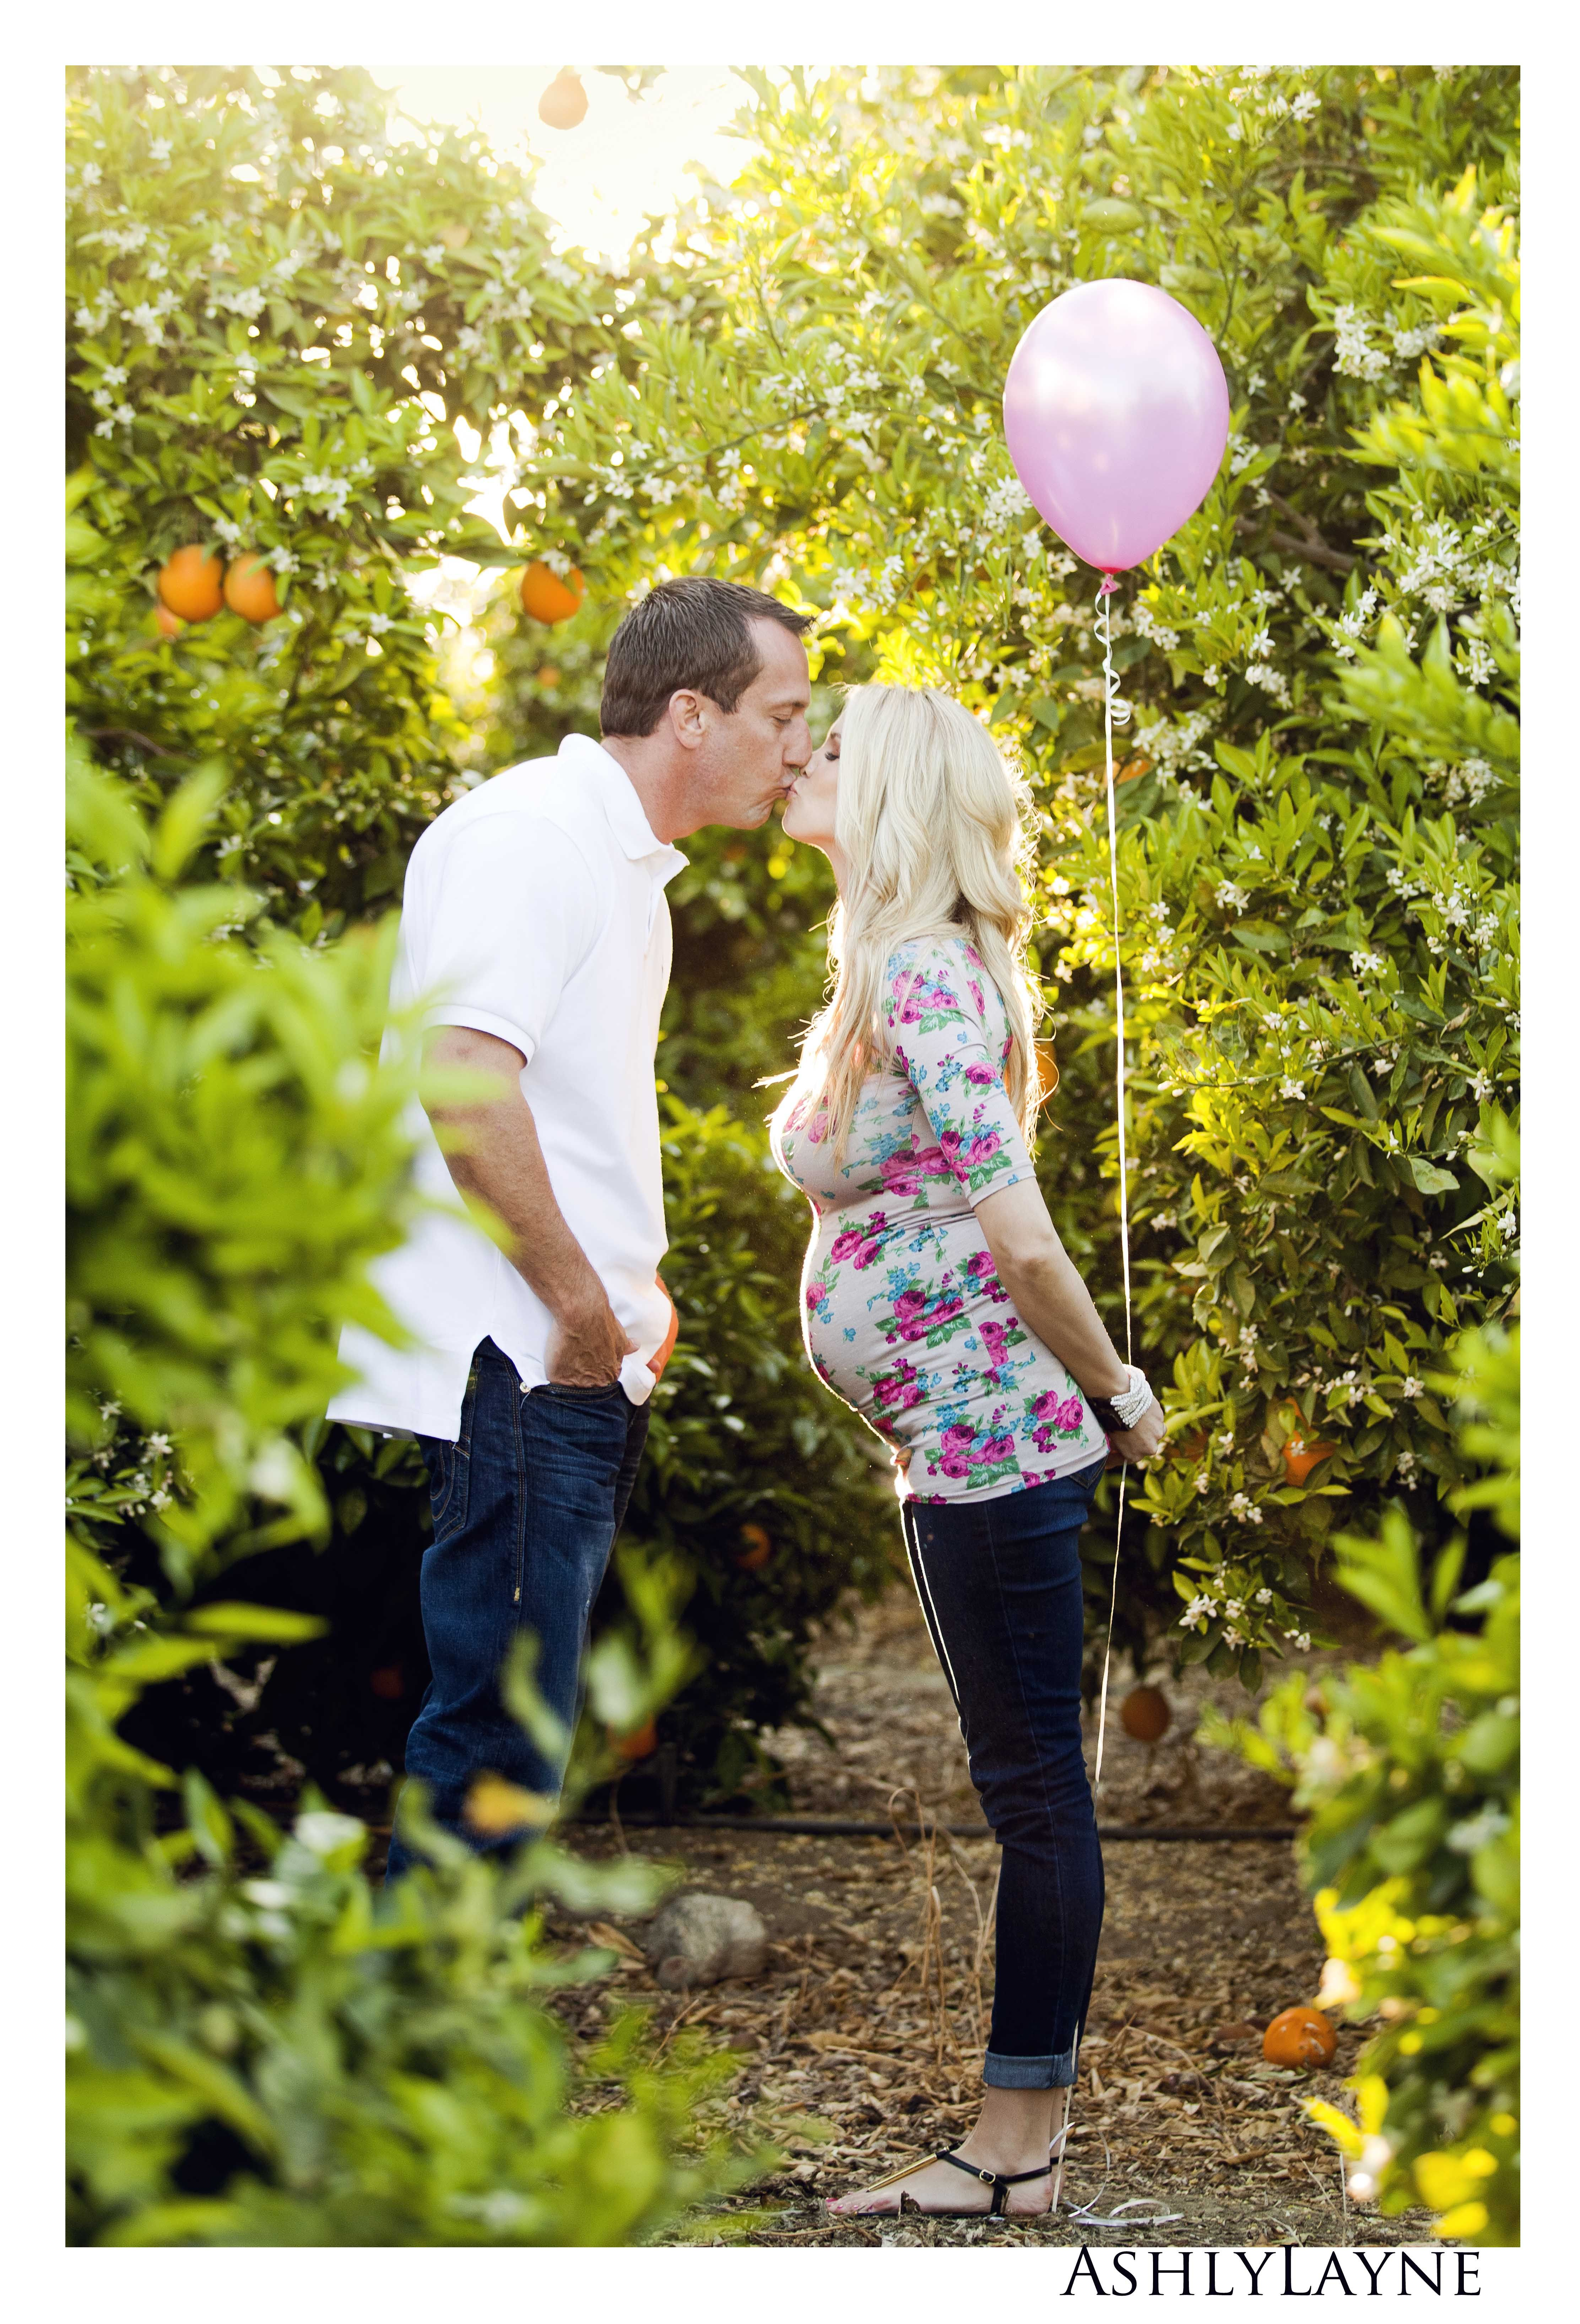 gender reveal photo shoot maternity session – How to Announce Baby Boy